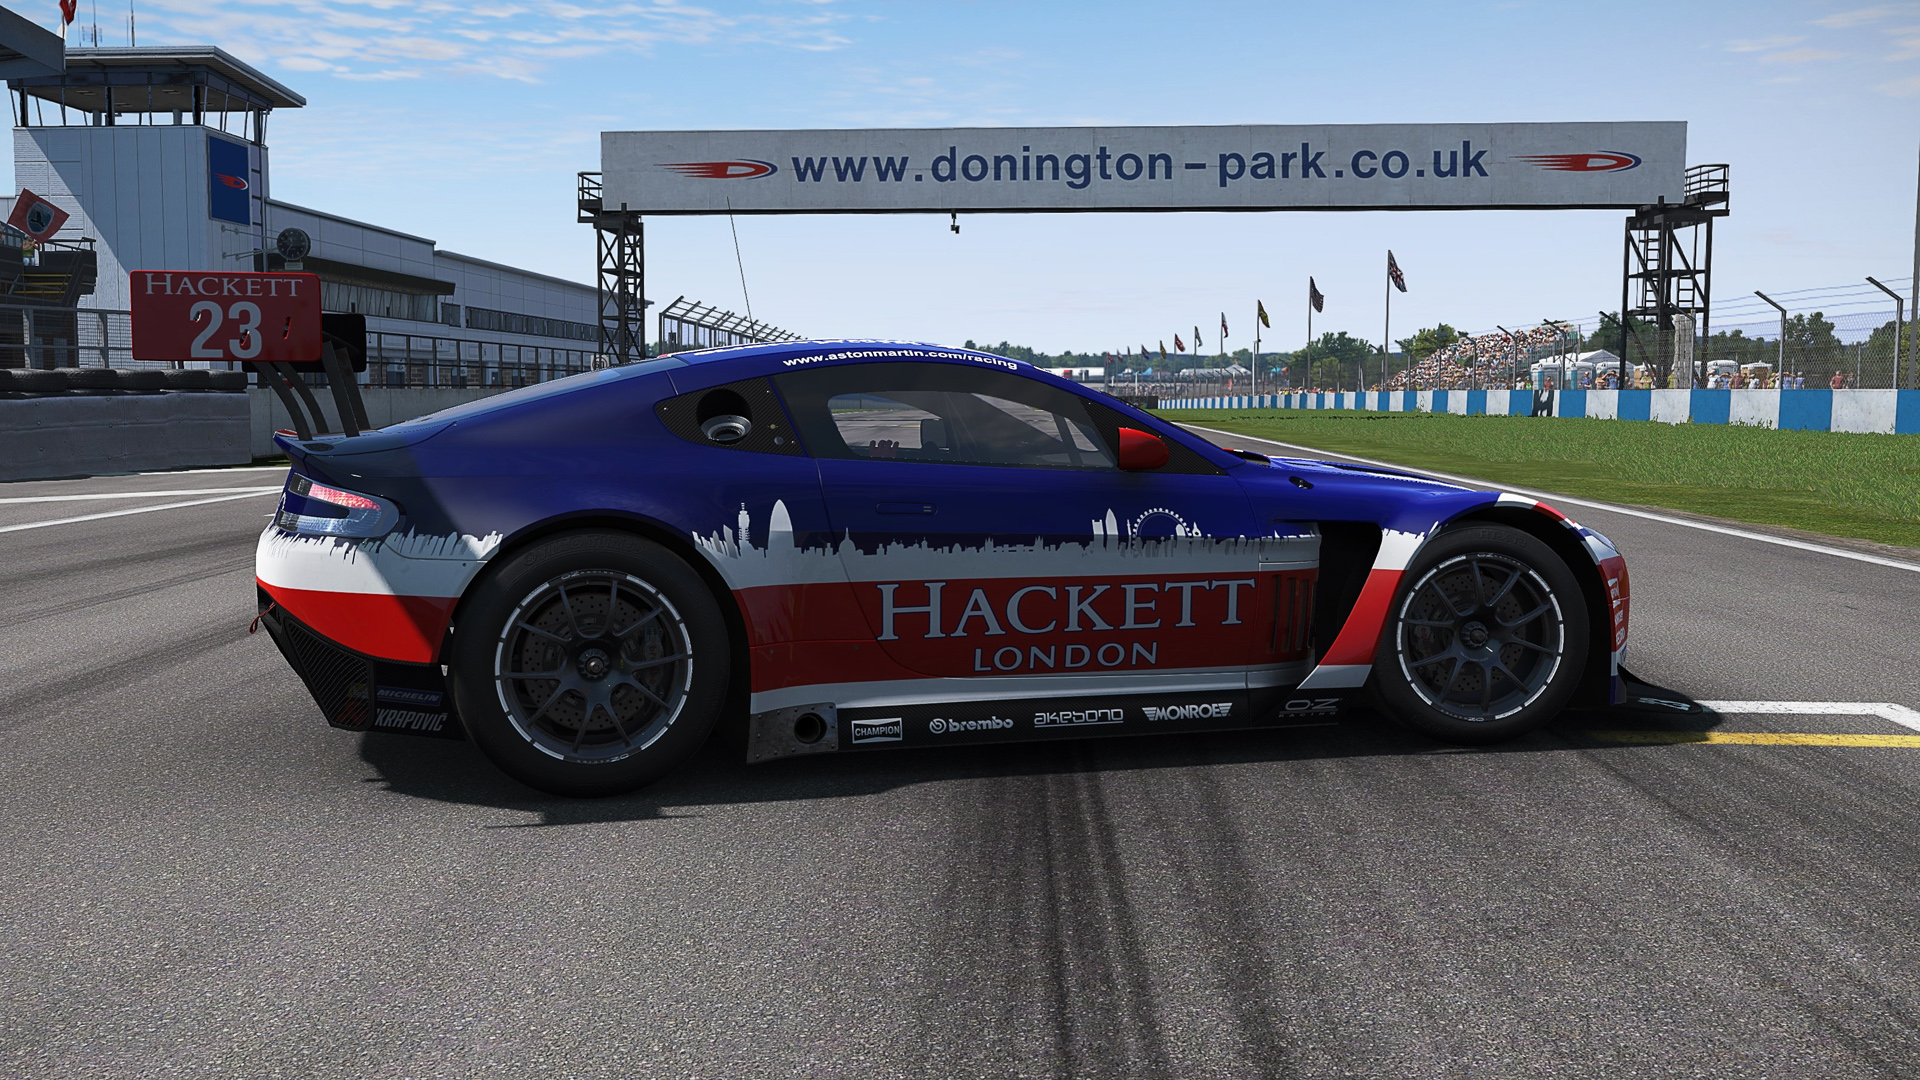 Aston at Donington